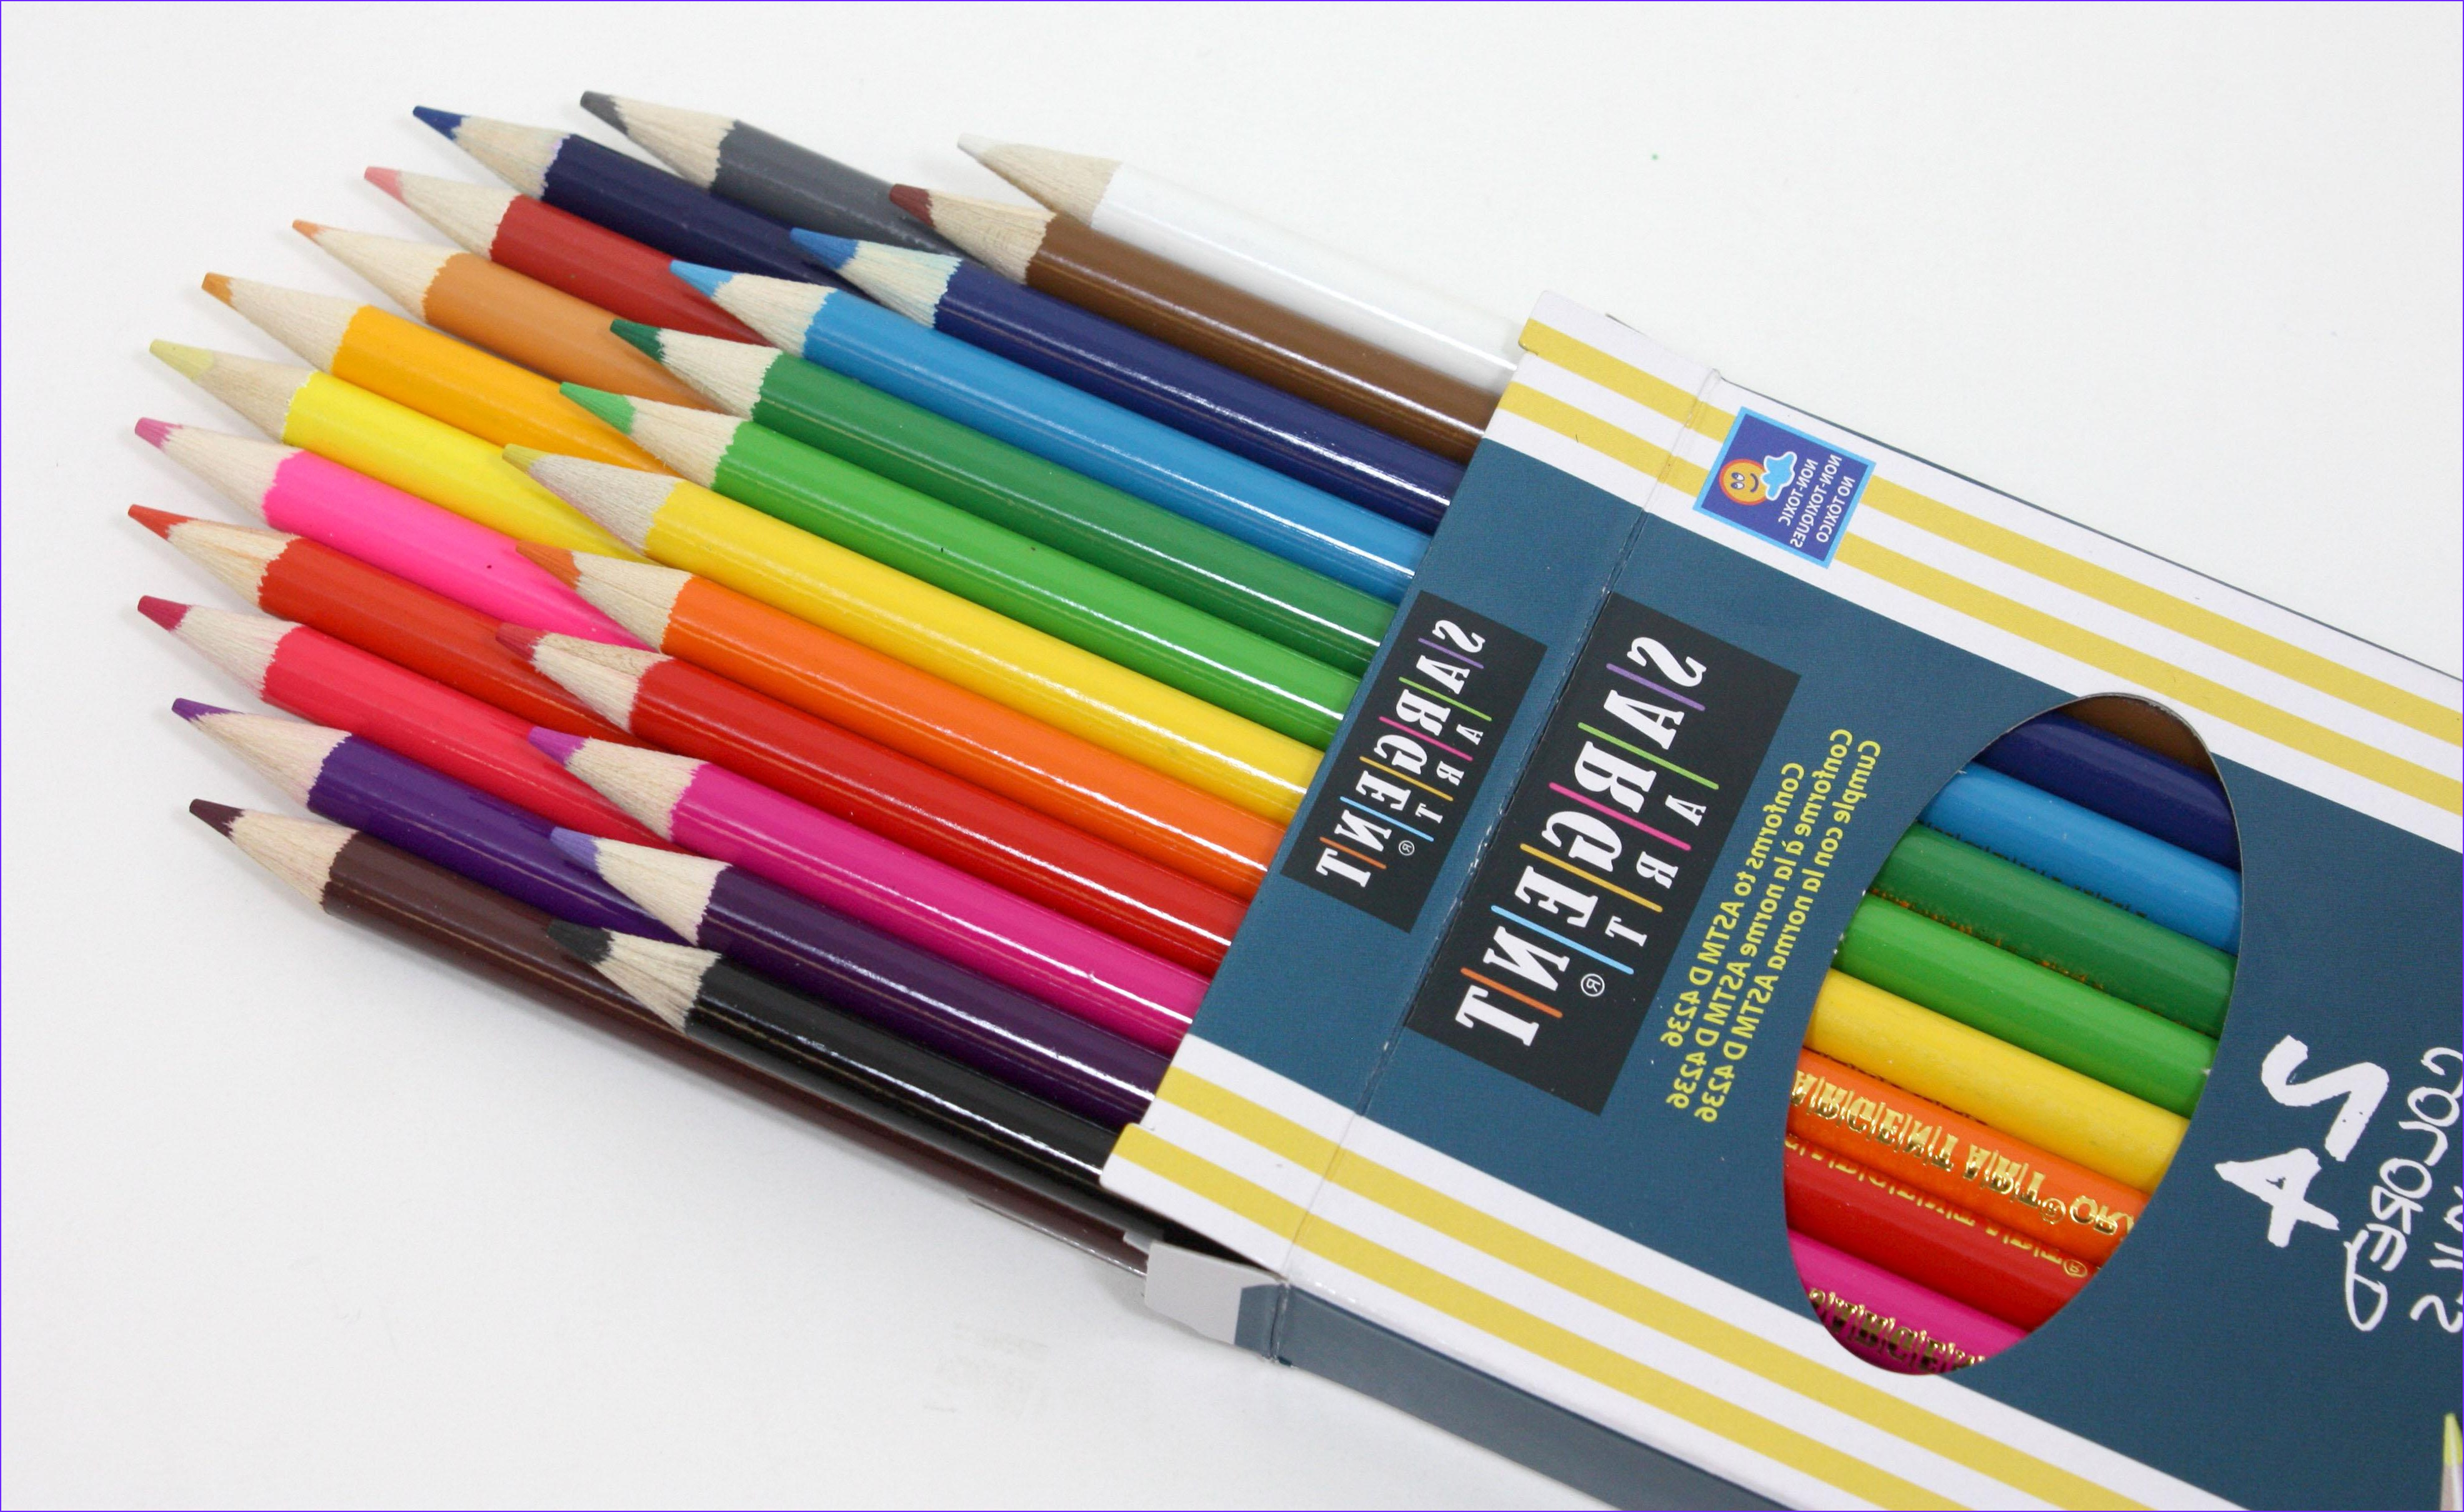 Pencil Coloring Inspirational Photos Amazon Sargent Art 22 7224 24 Count assorted Colored